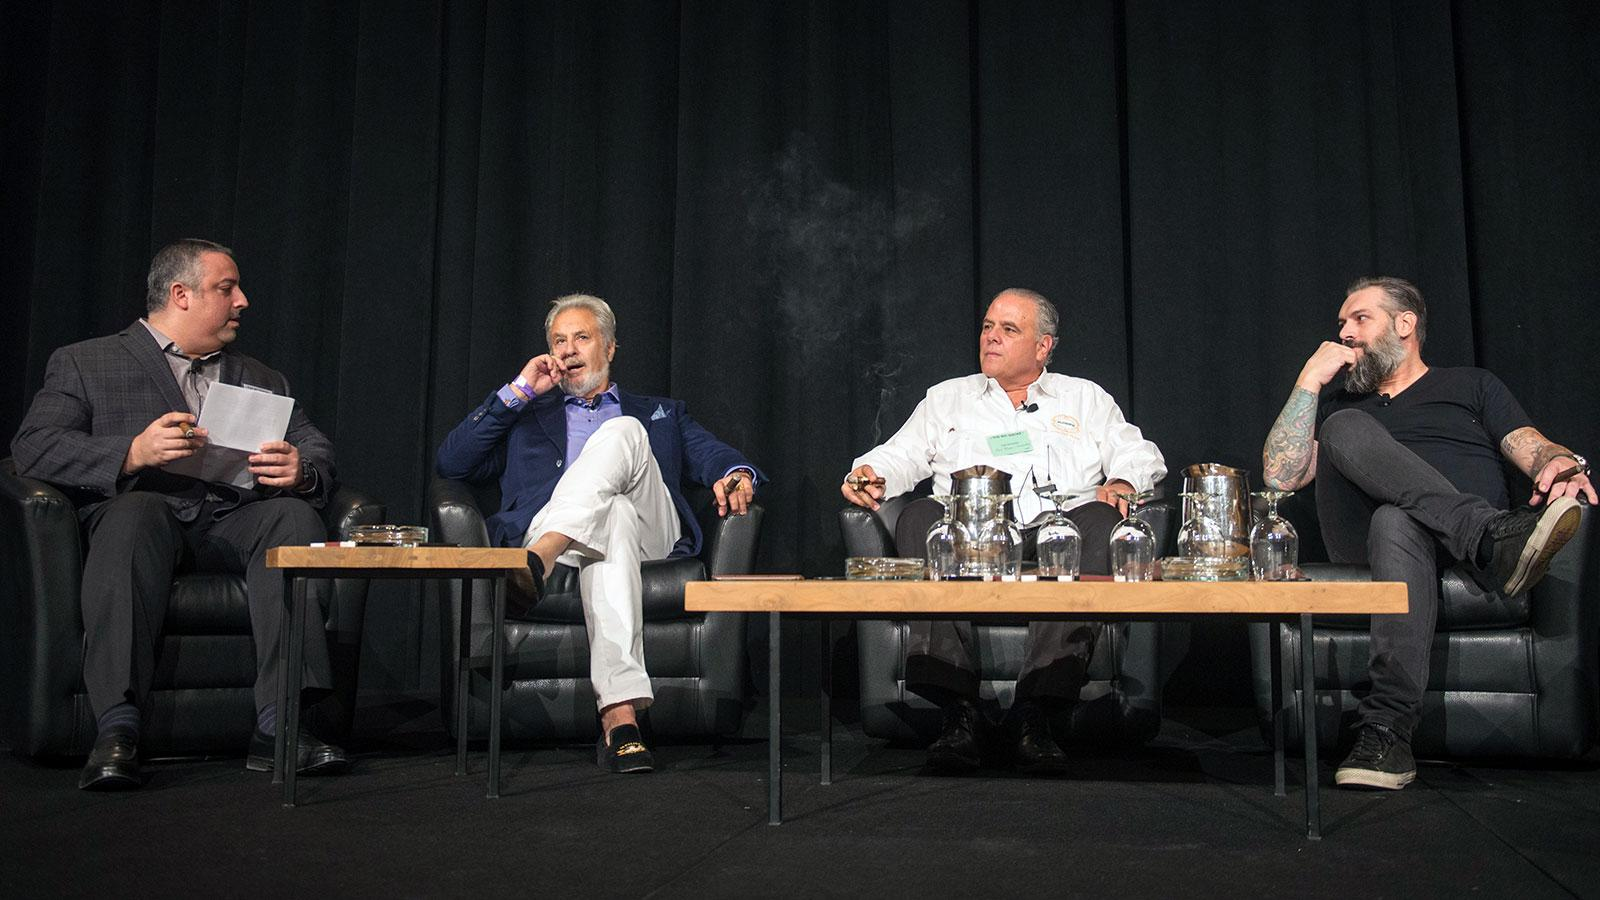 Senior editor Gregory Mottola, far left, speaks with three cigarmakers for a seminar on Miami-made cigars. From left: Bill Paley, of La Palina, Paul Palmer, of Casa Fernandez, and Pete Johnson, of Tatuaje.